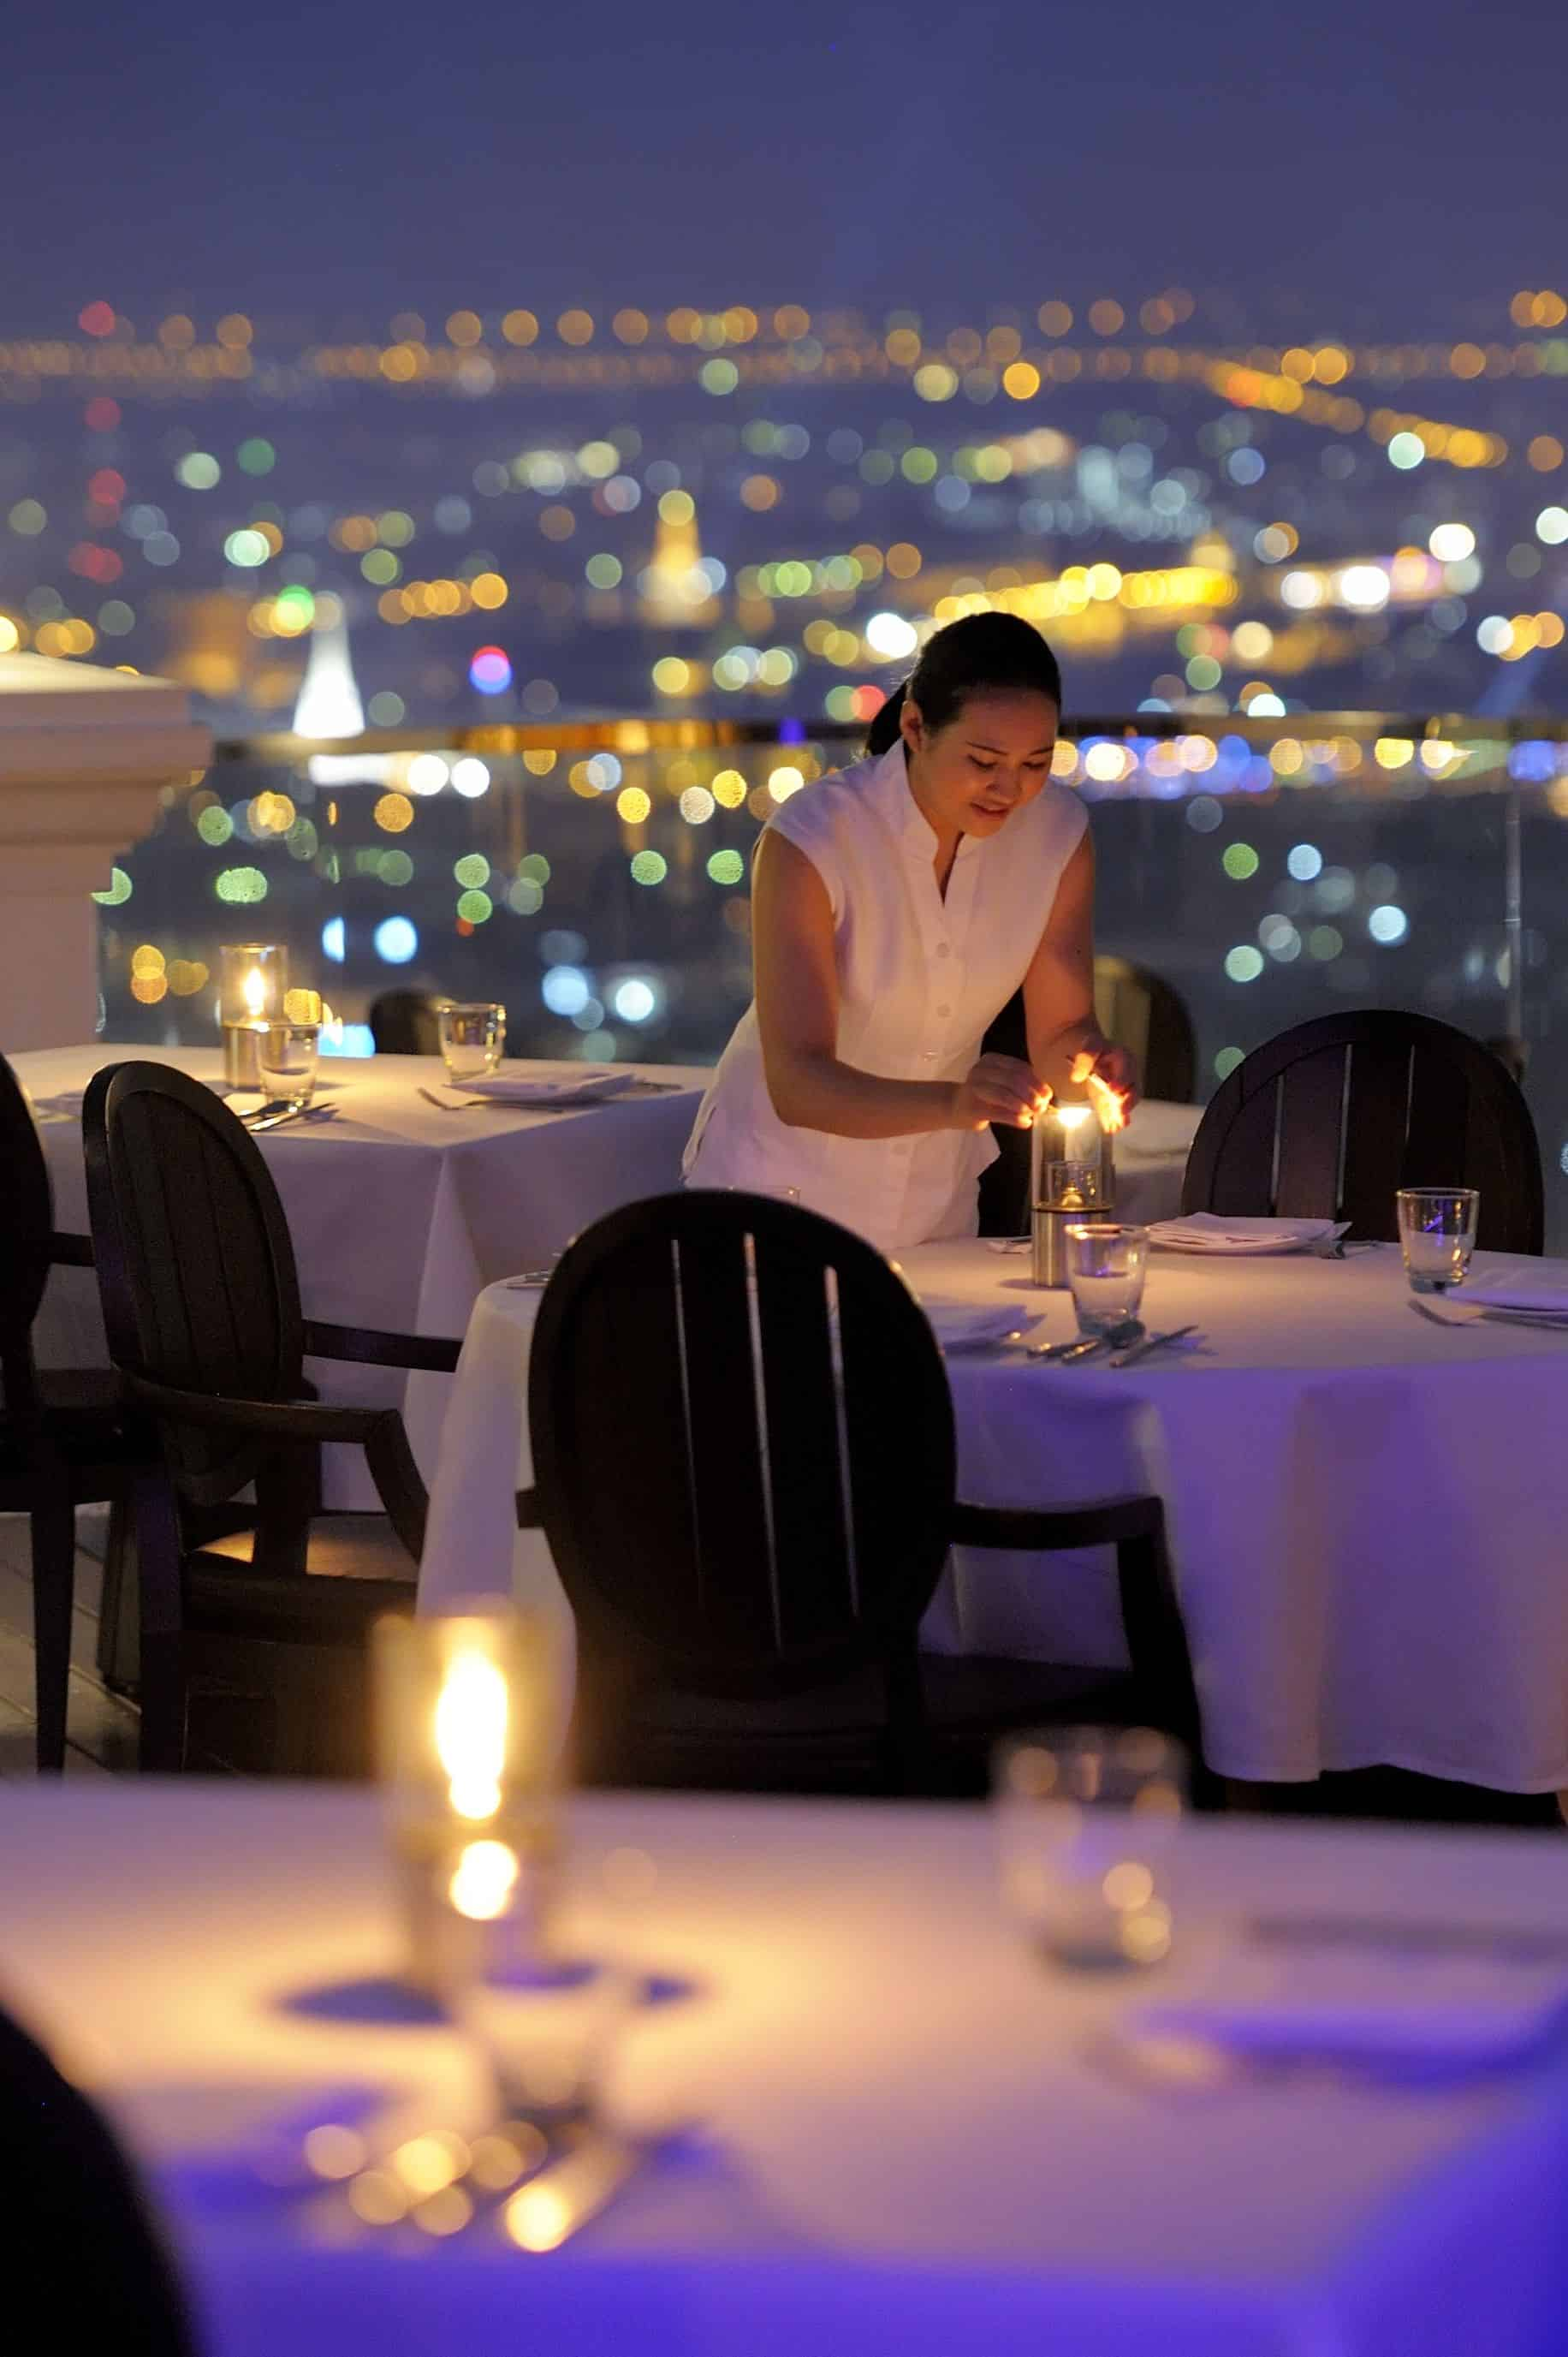 woman in white dress lighting candles on terrace table